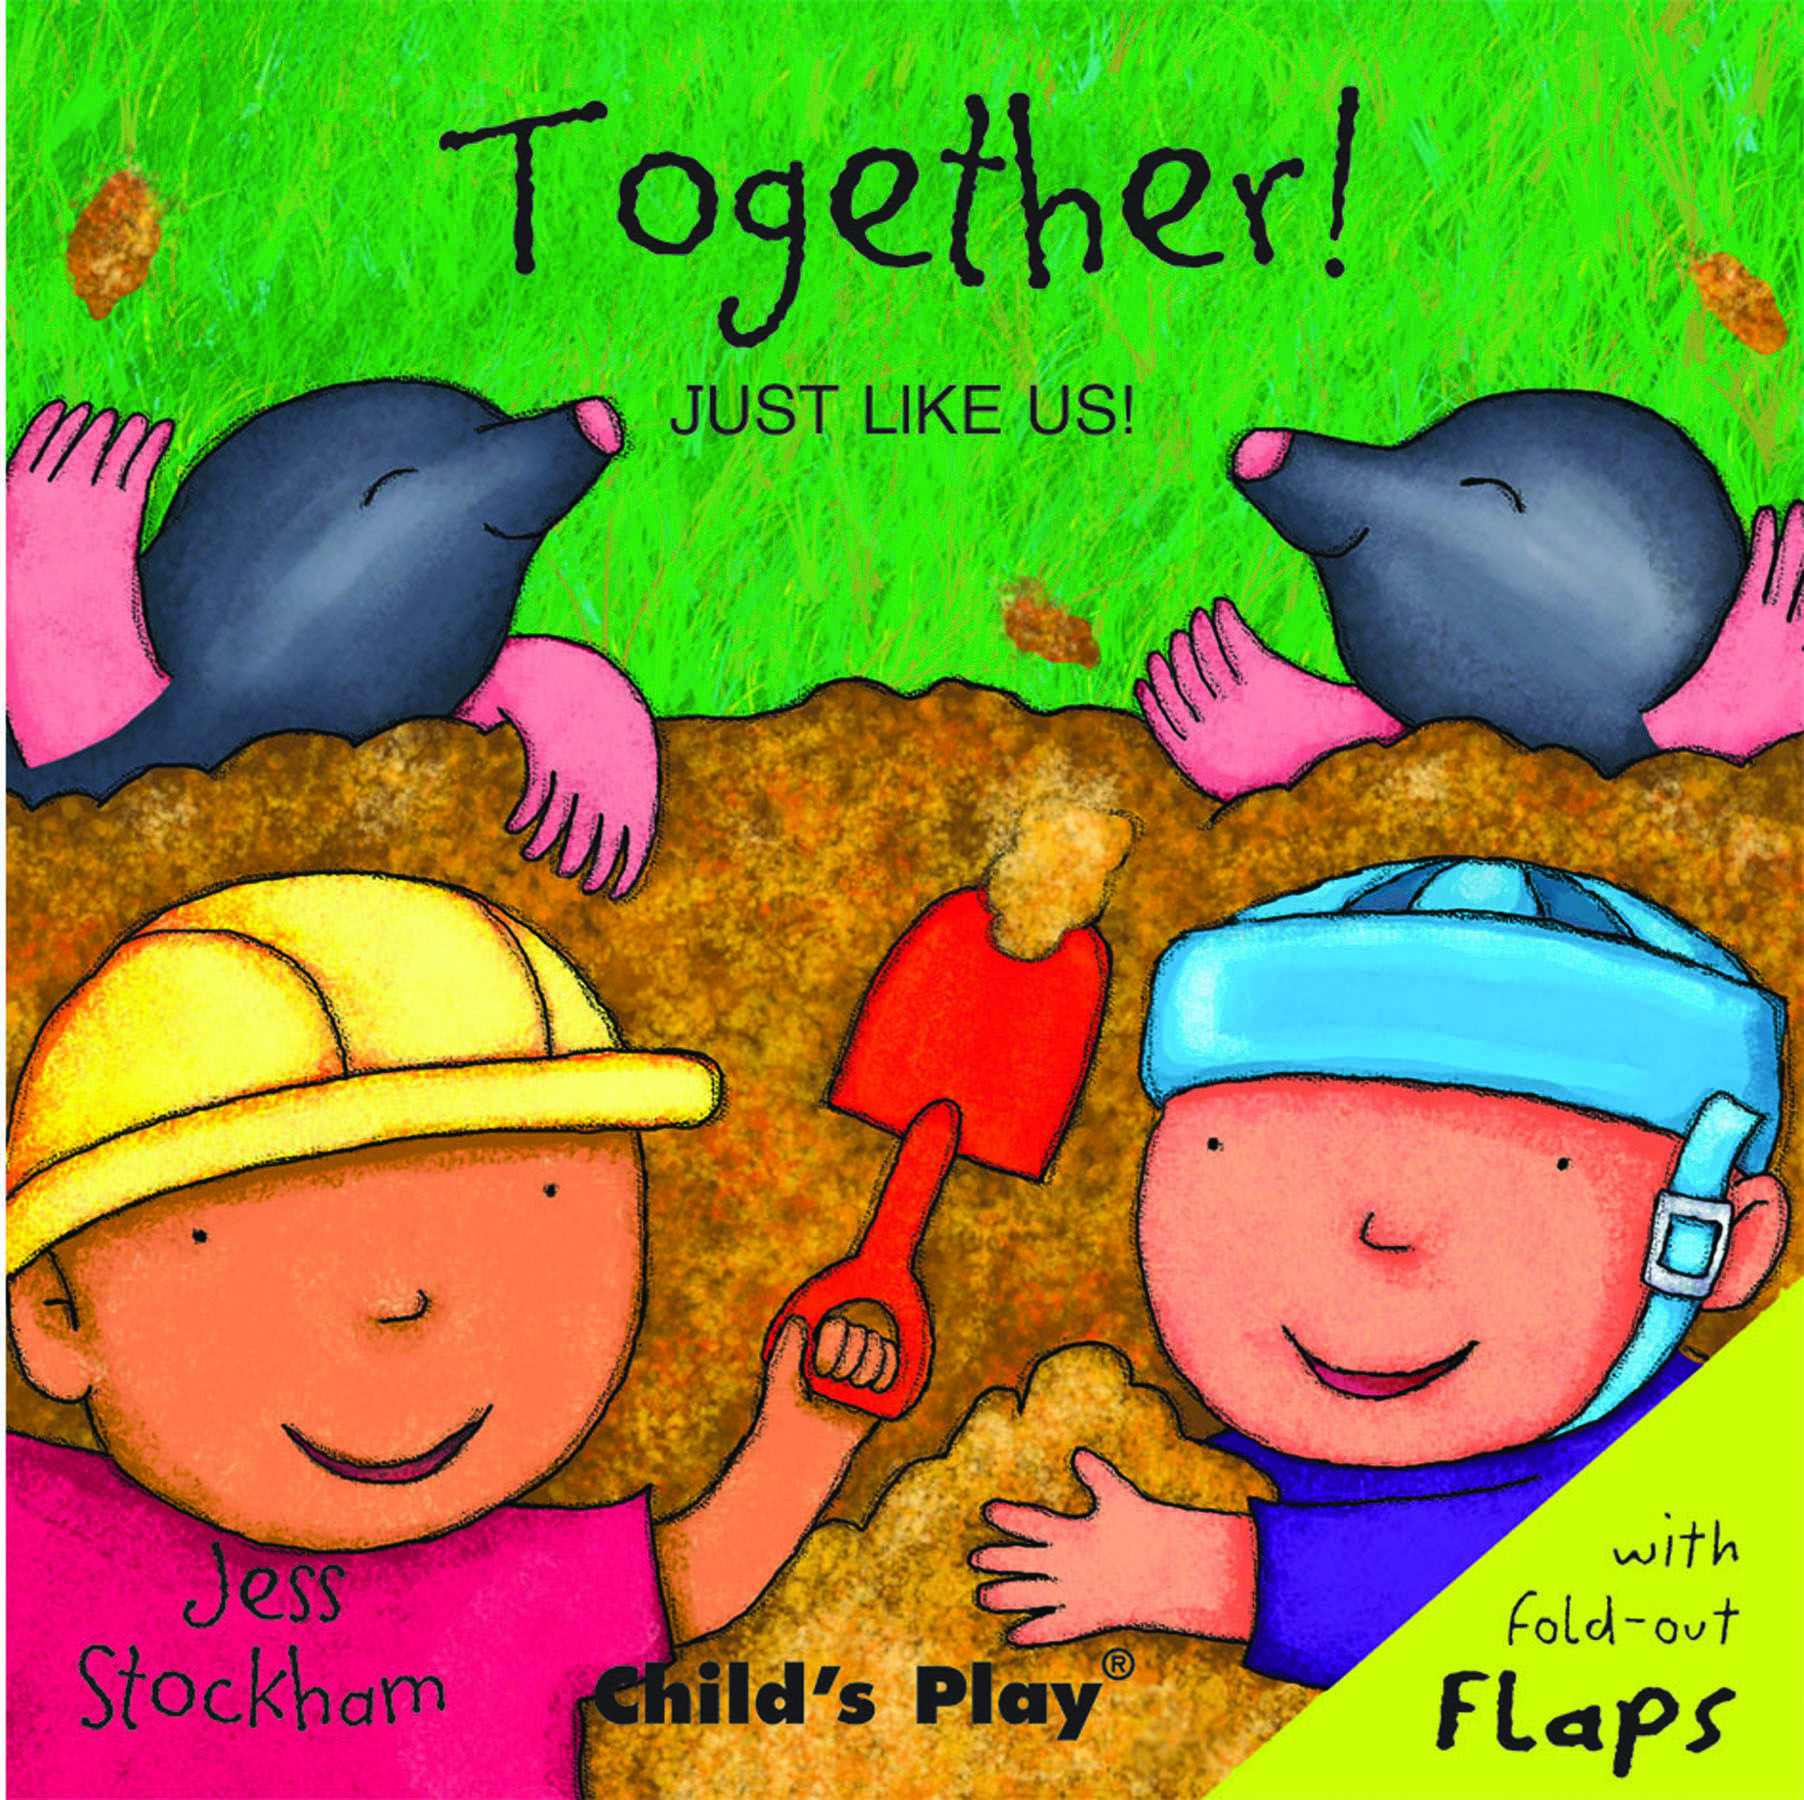 Fun flap book featuring a child wearing a safety helmet